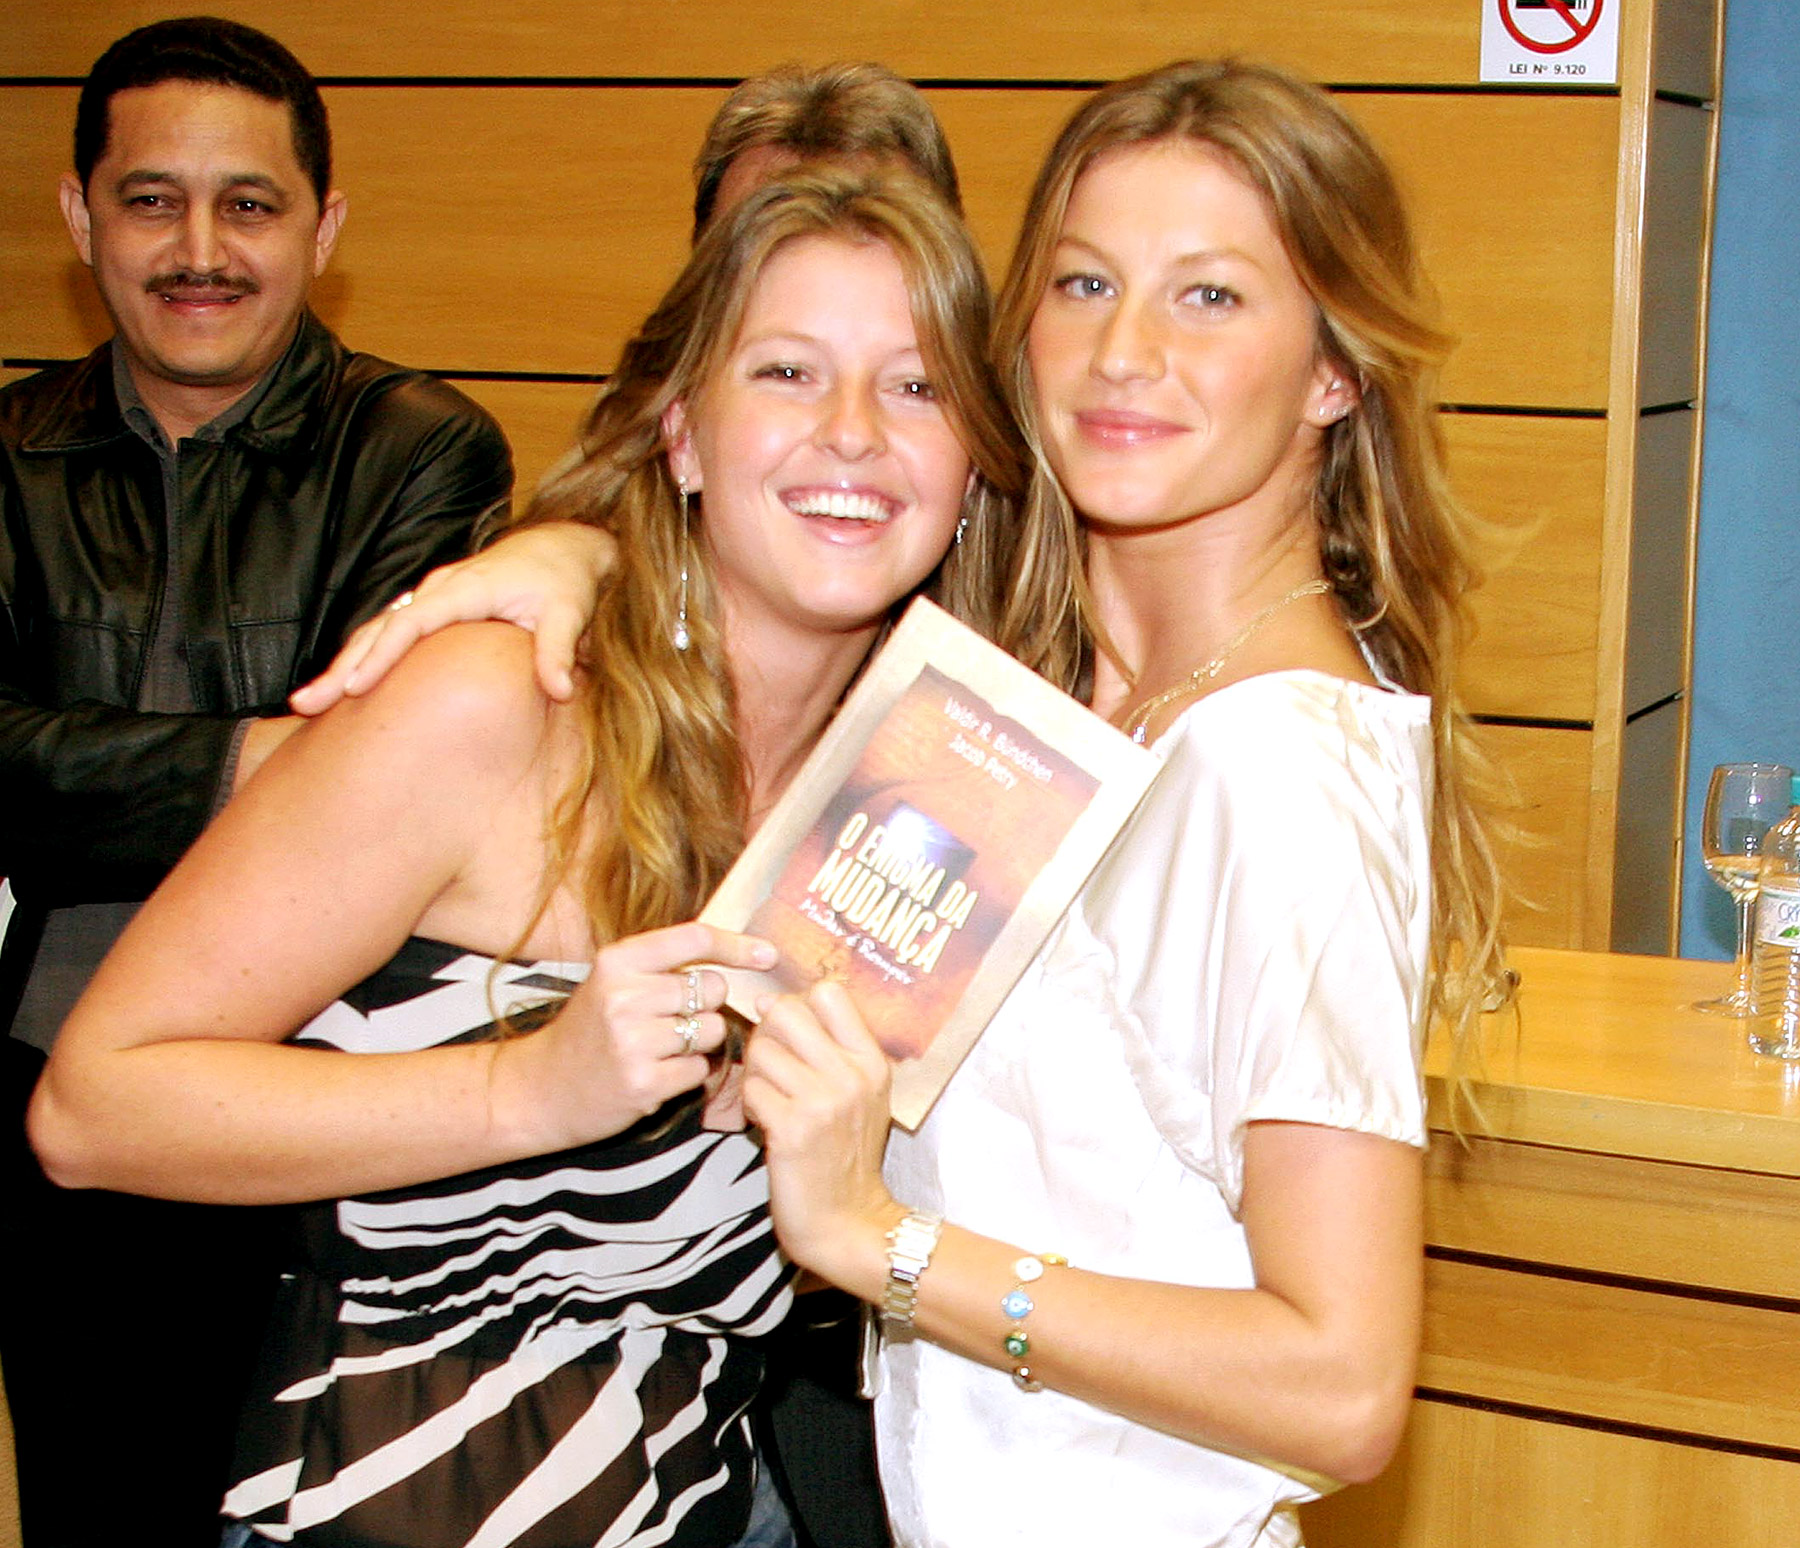 Supermodel sis! Before she was Mrs. Tom Brady, global catwalking queen Gisele Bundchen was raised in Brazil with five sisters -- Gabi, Raquel, Graziela, Rafaela and her fraternal twin, Patricia.